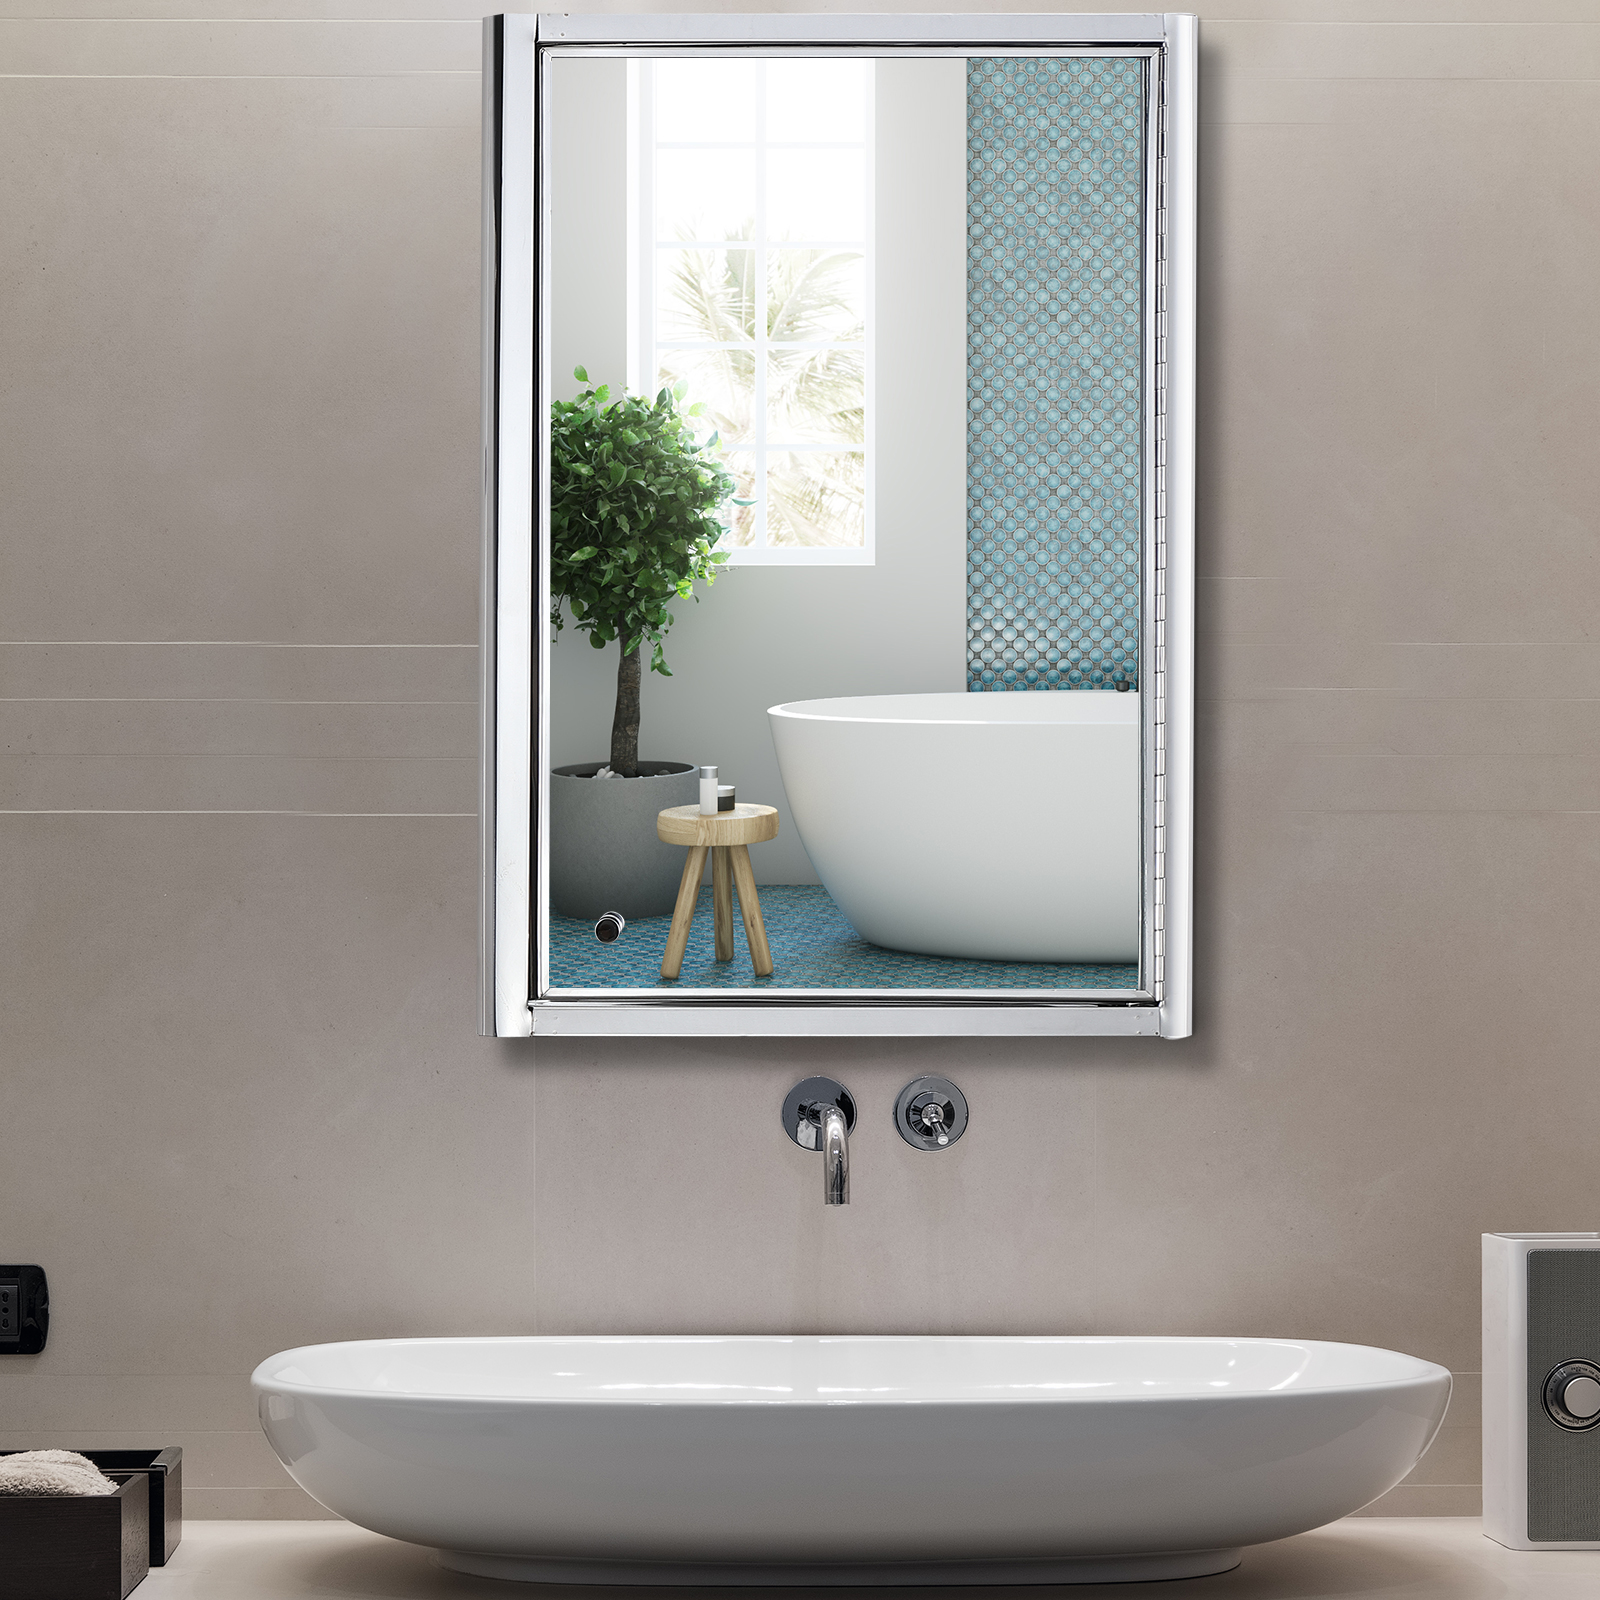 14 W X 20 H Wall Mounted Bathroom Medicine Cabinet With Vanity Mirror Ebay